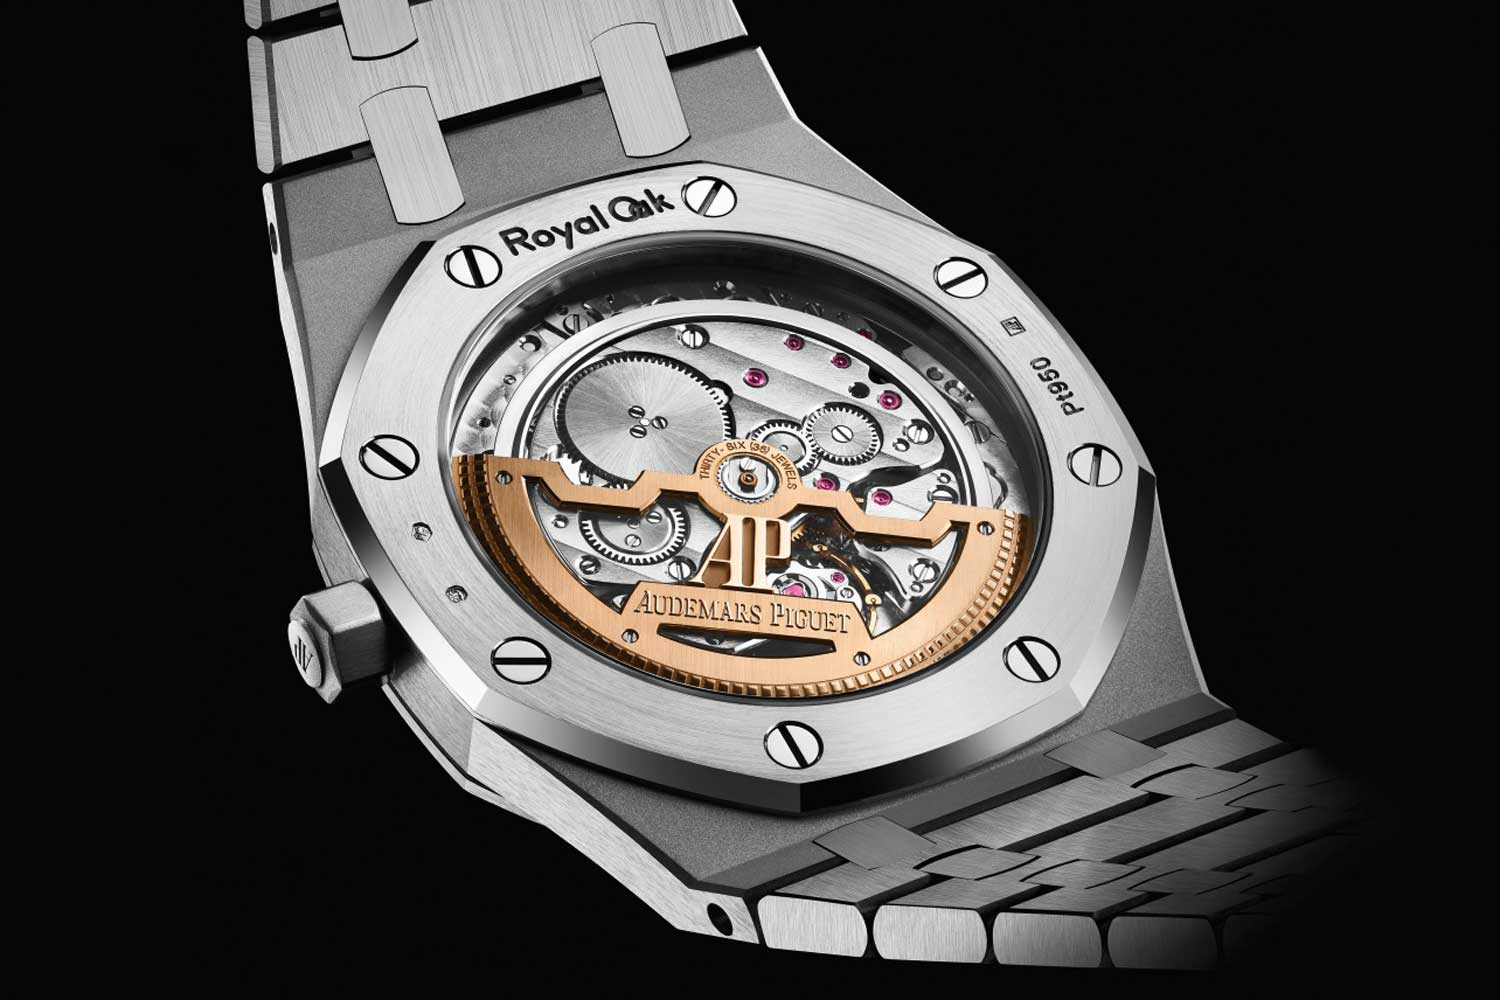 """The Royal Oak """"Jumbo"""" Extra-Thin Reference 15202 features the legendary Calibre 2121"""